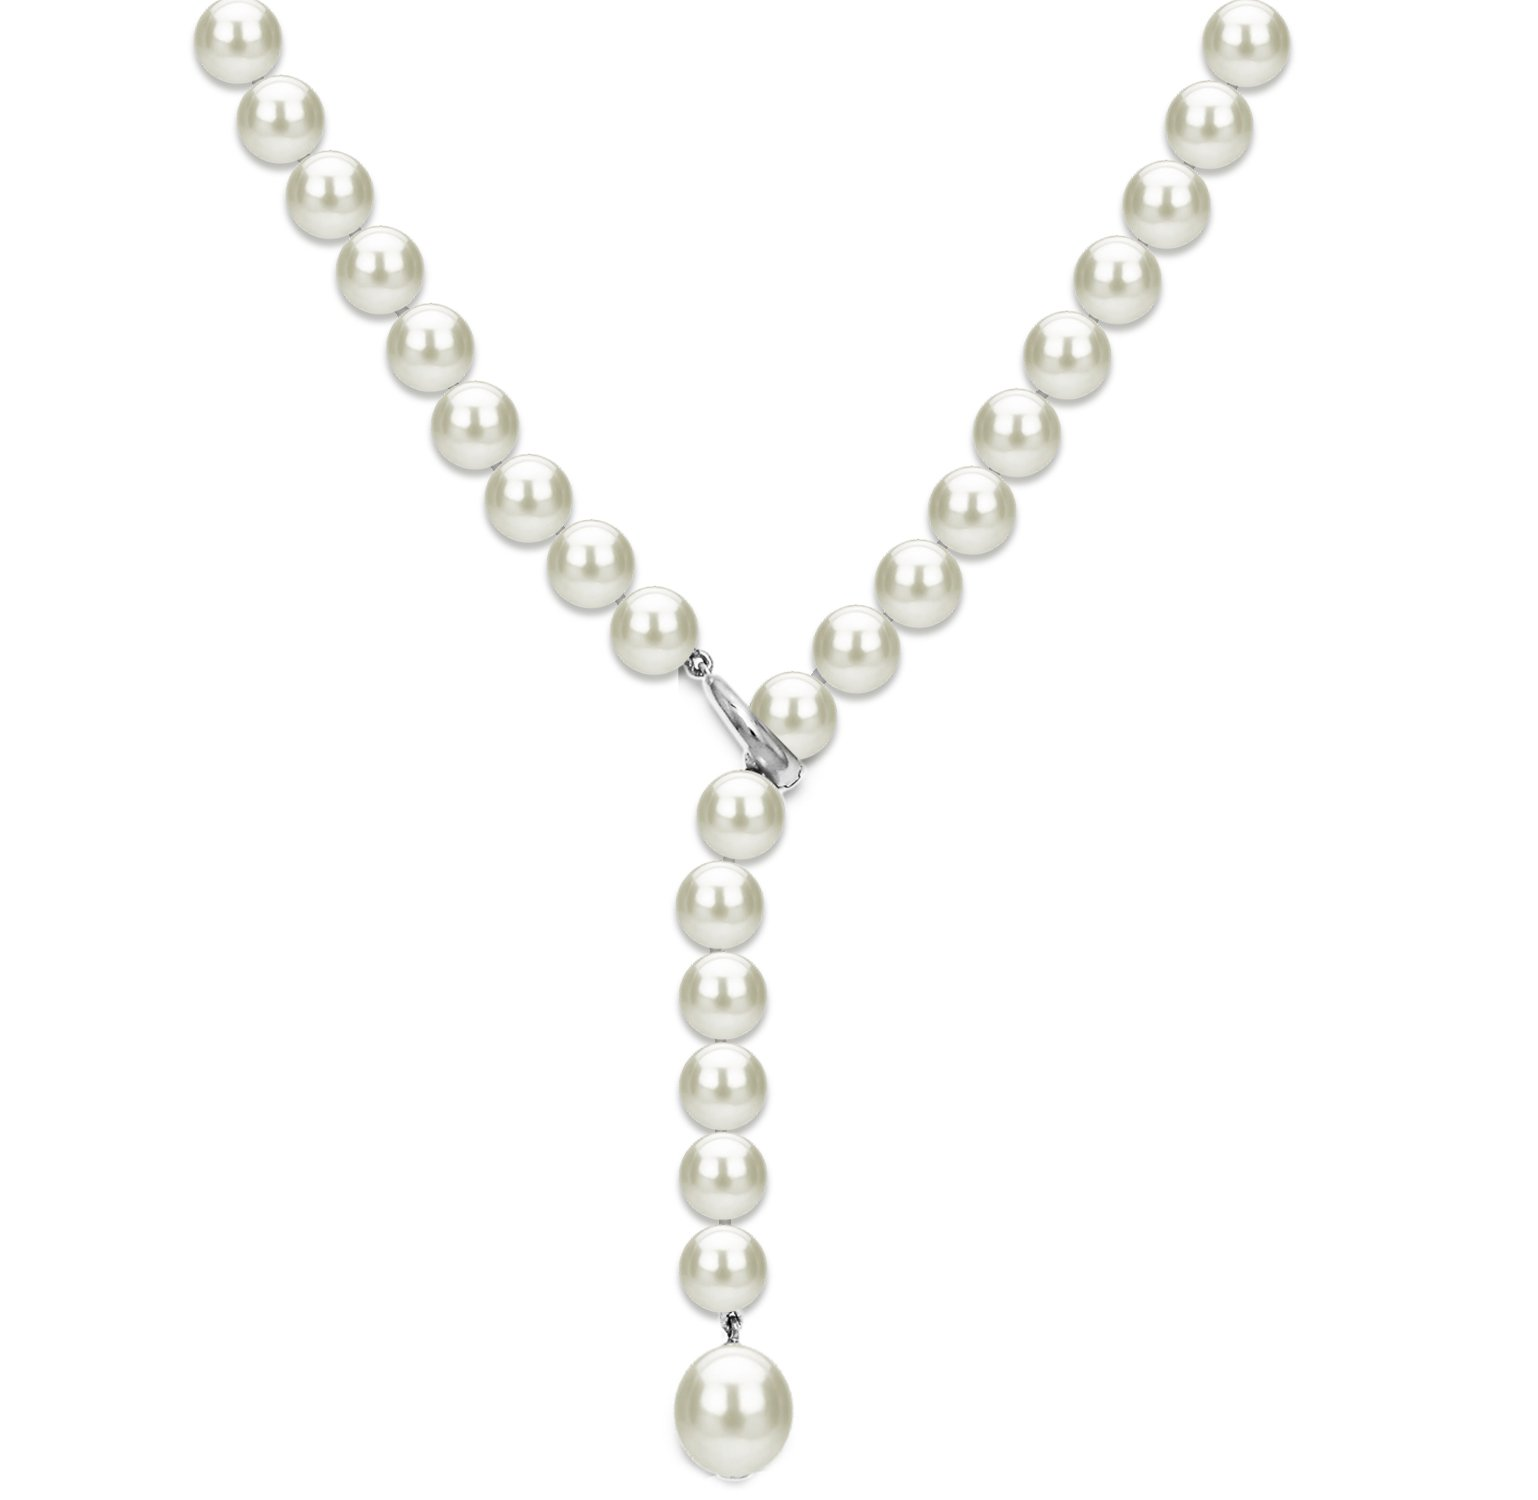 Sterling Silver Freshwater Cultured Pearl Necklace for Women 20 inch 7-7.5mm